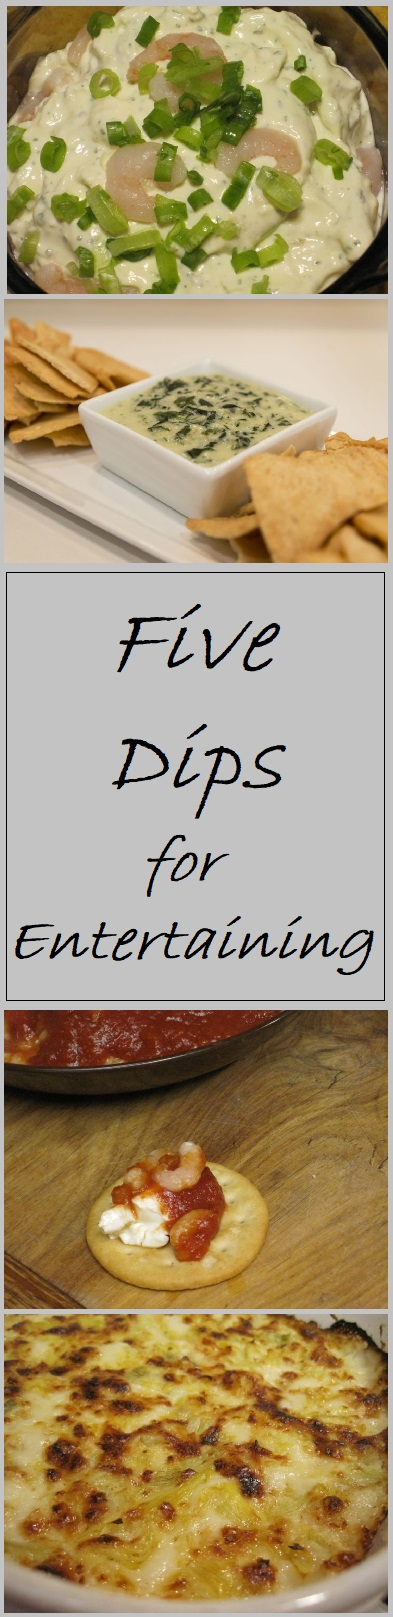 5 dipes for entertaining--each of these dips is easy to prepare and loaded with flavor.